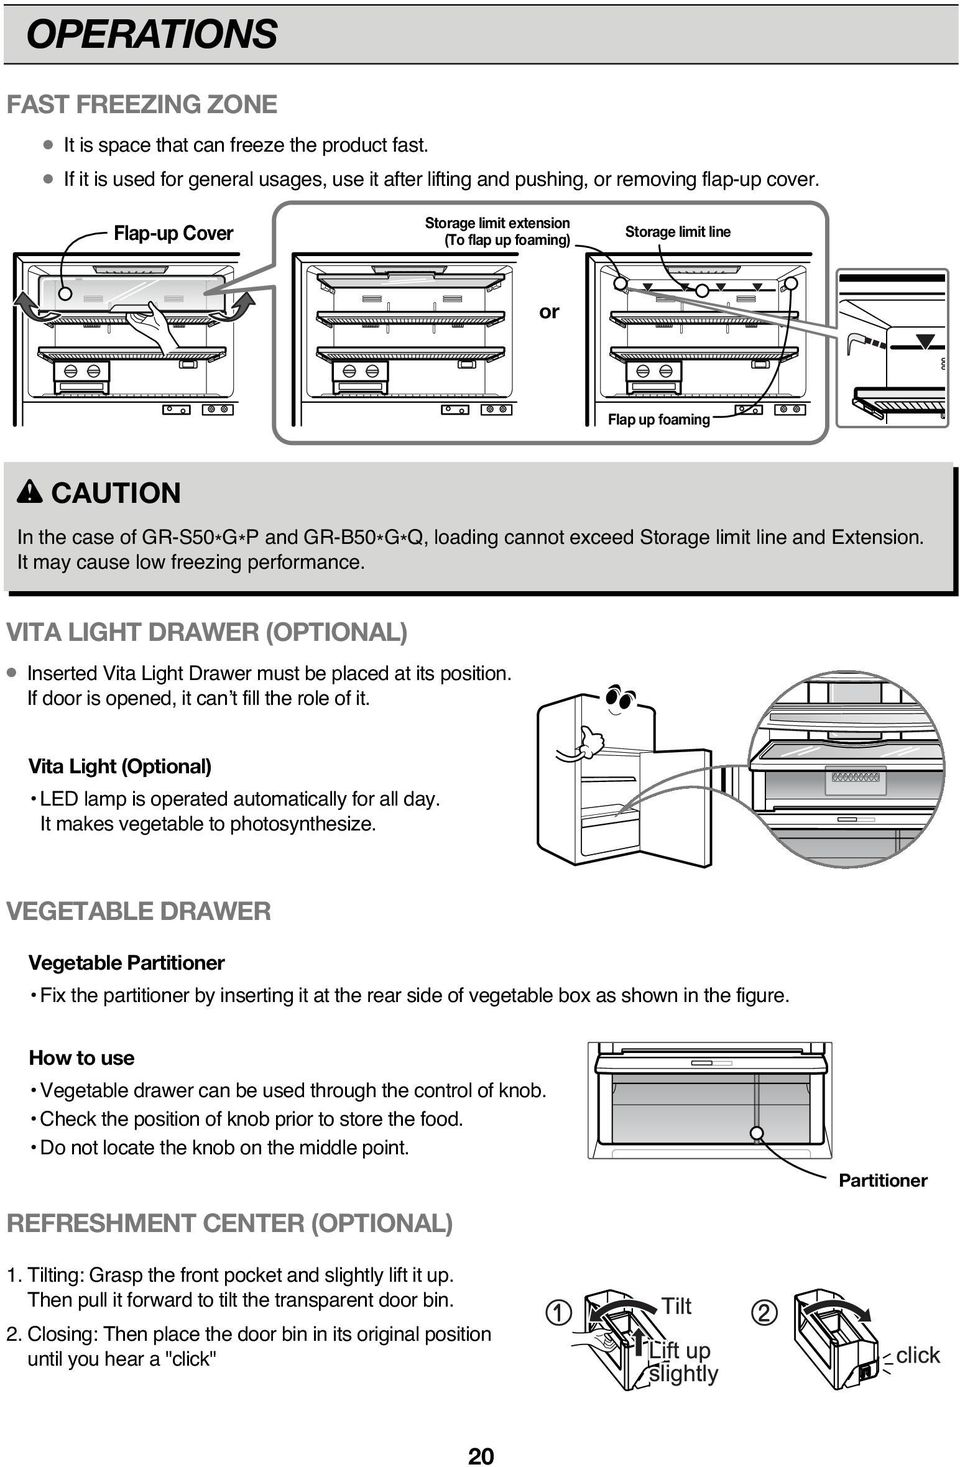 and Extension. It may cause low freezing performance. VITA LIGHT DRAWER (OPTIONAL) Inserted Vita Light Drawer must be placed at its position. If door is opened, it can t fill the role of it.